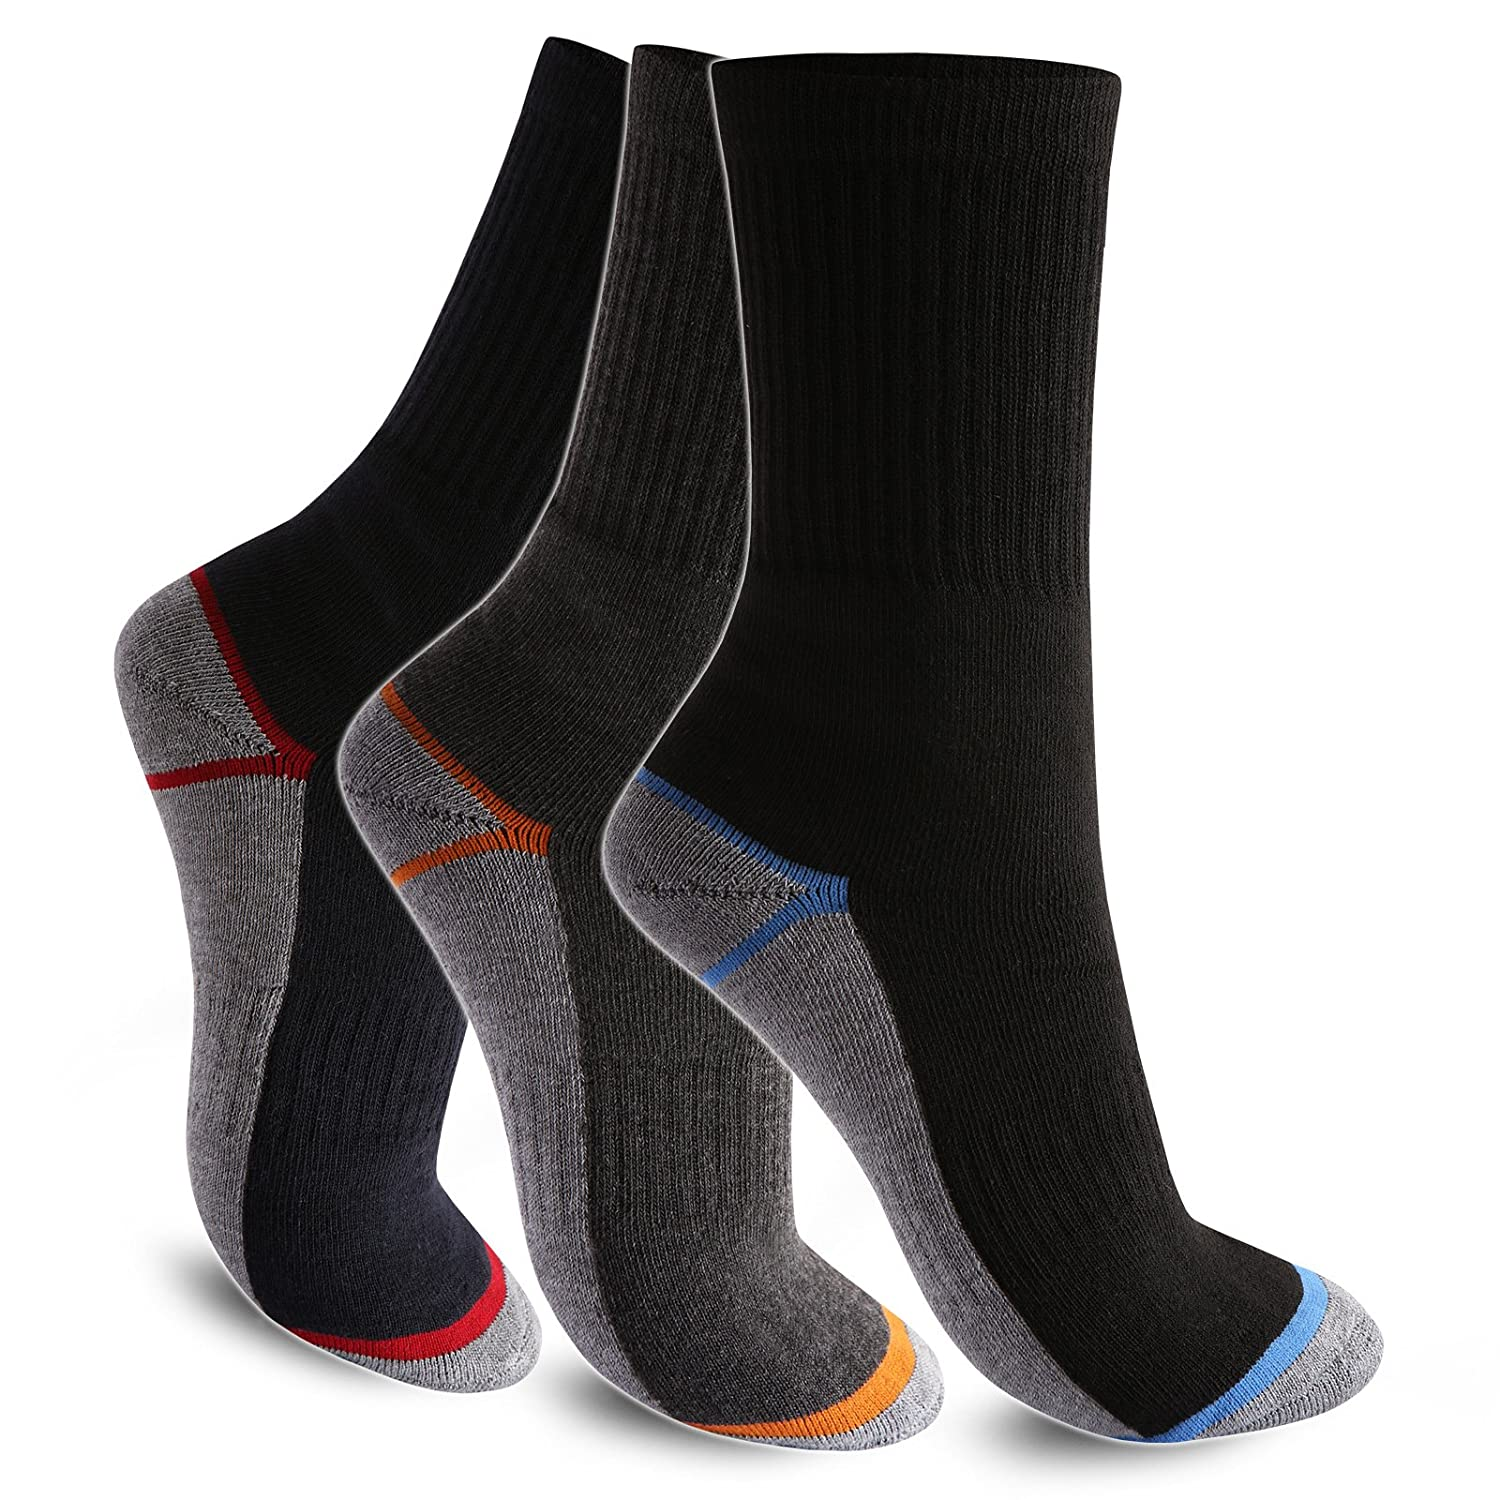 6-12-24 Paar Socken Thermosocken Warme Winter Sport Ski Arbeitssocken Herren